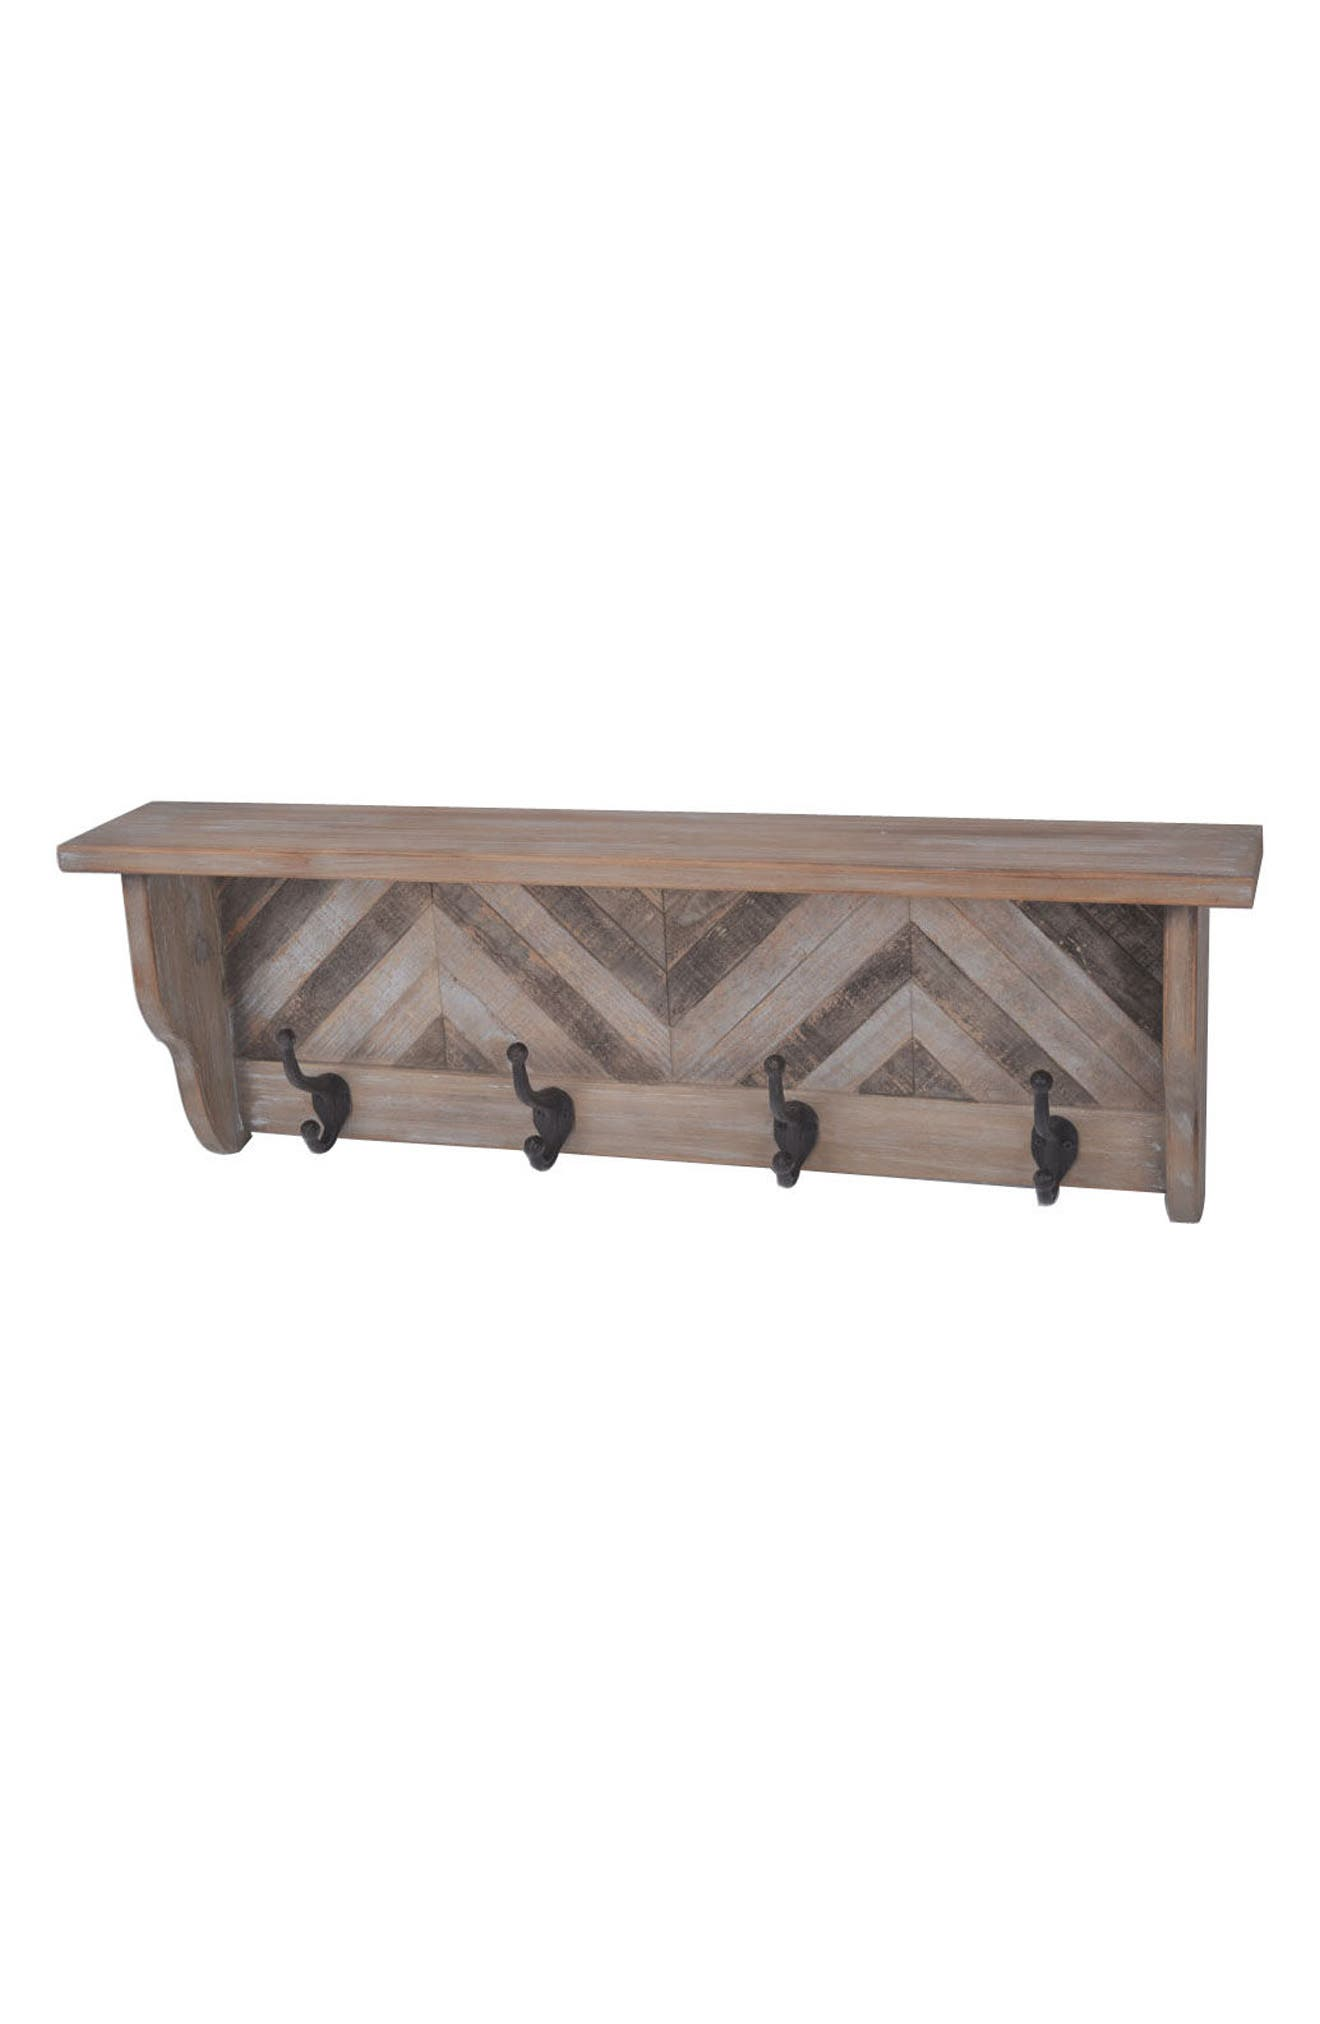 Main Image - Crystal Art Gallery Wooden Wall Shelf with Decorative Hooks